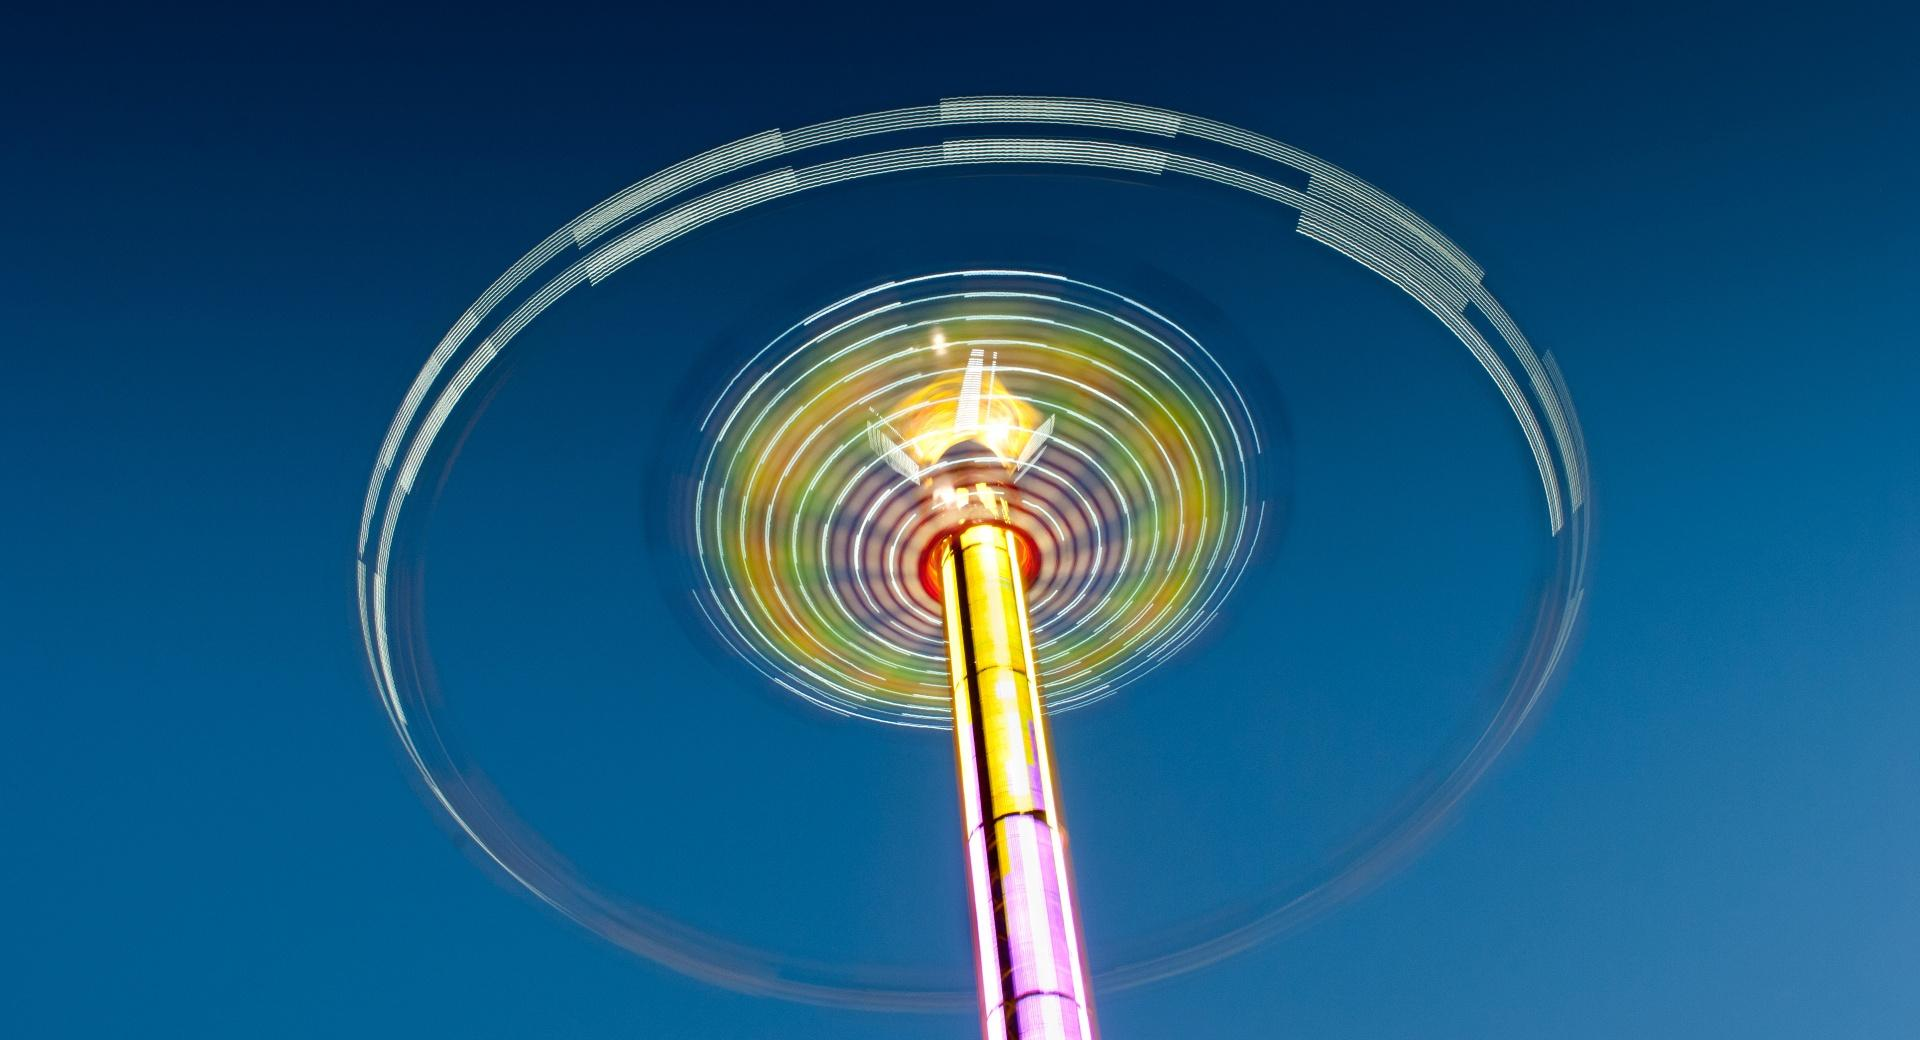 Spinny Rides wallpapers HD quality